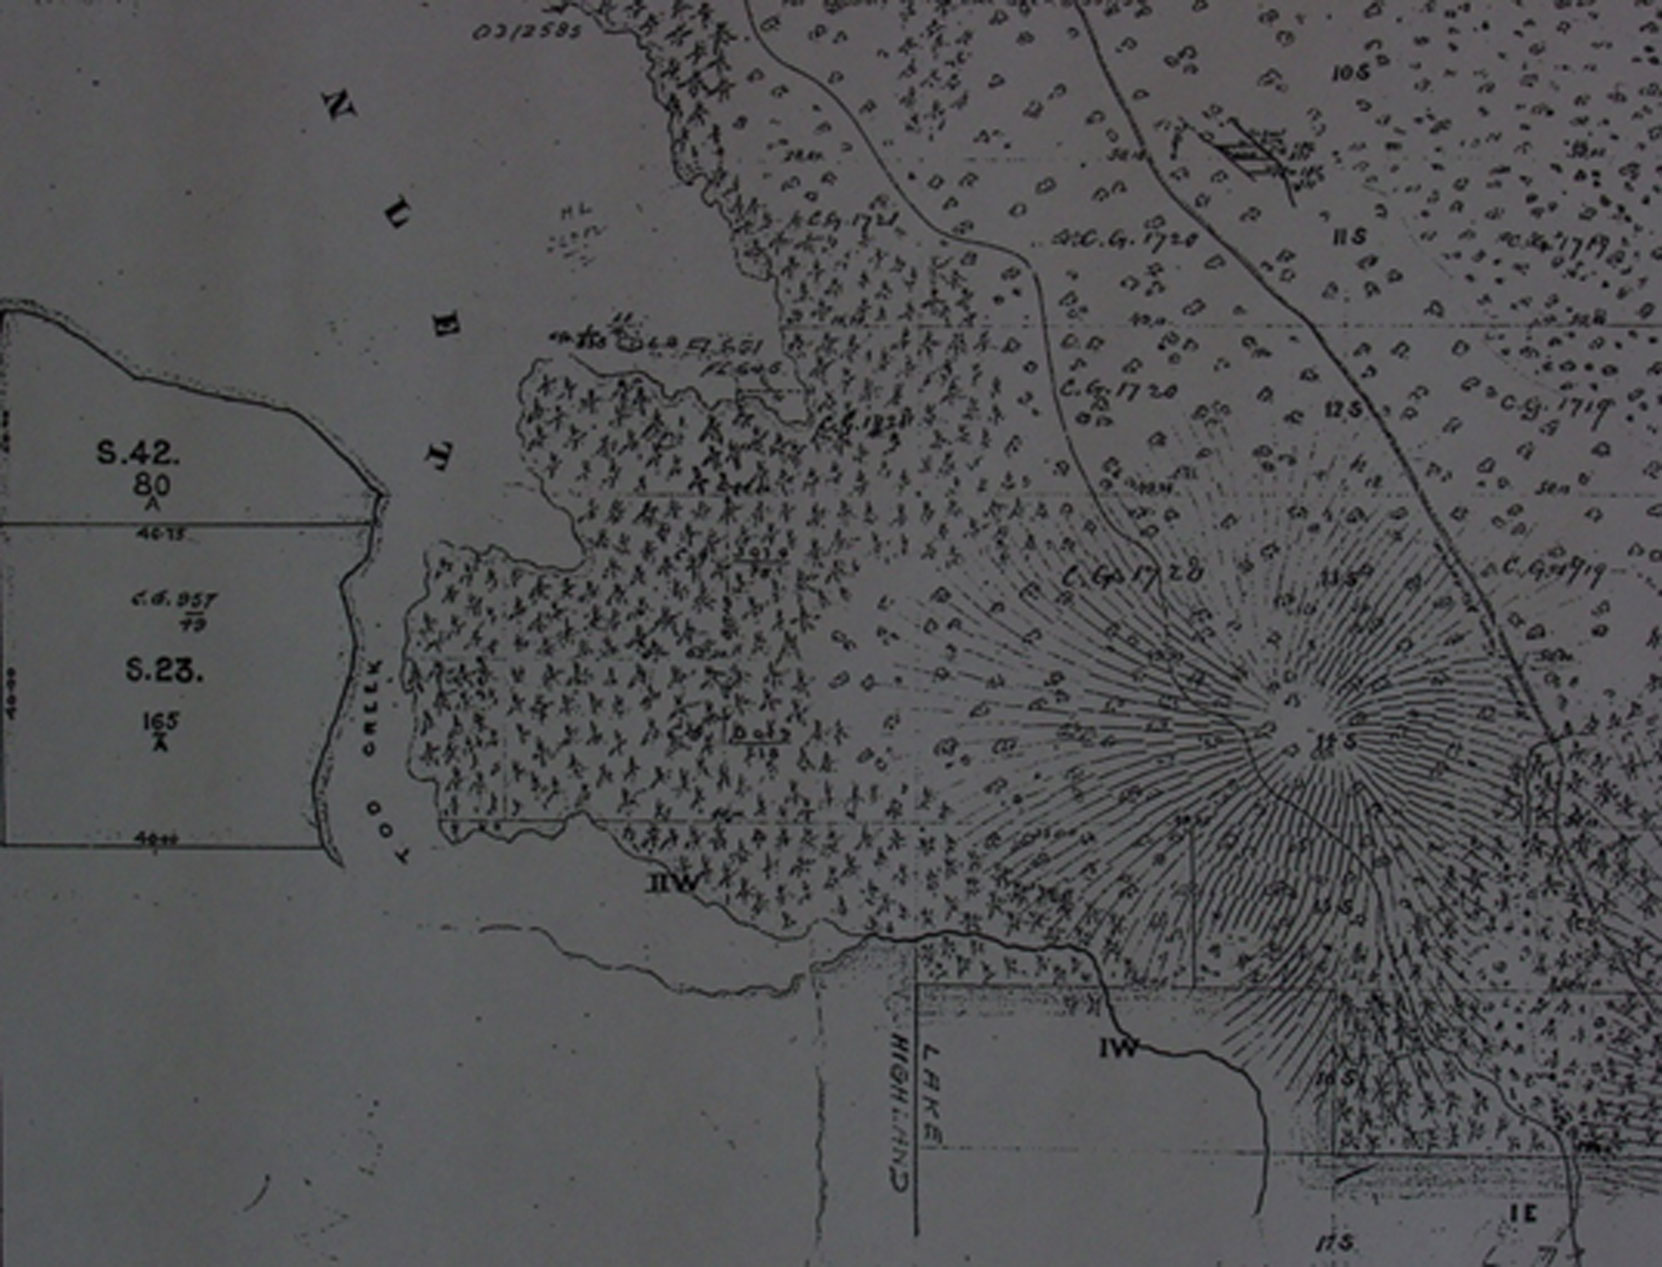 Portion of 1859 cadastral map showing Tod Inlet and the land that is now Butchart Gardens (BC Archives)